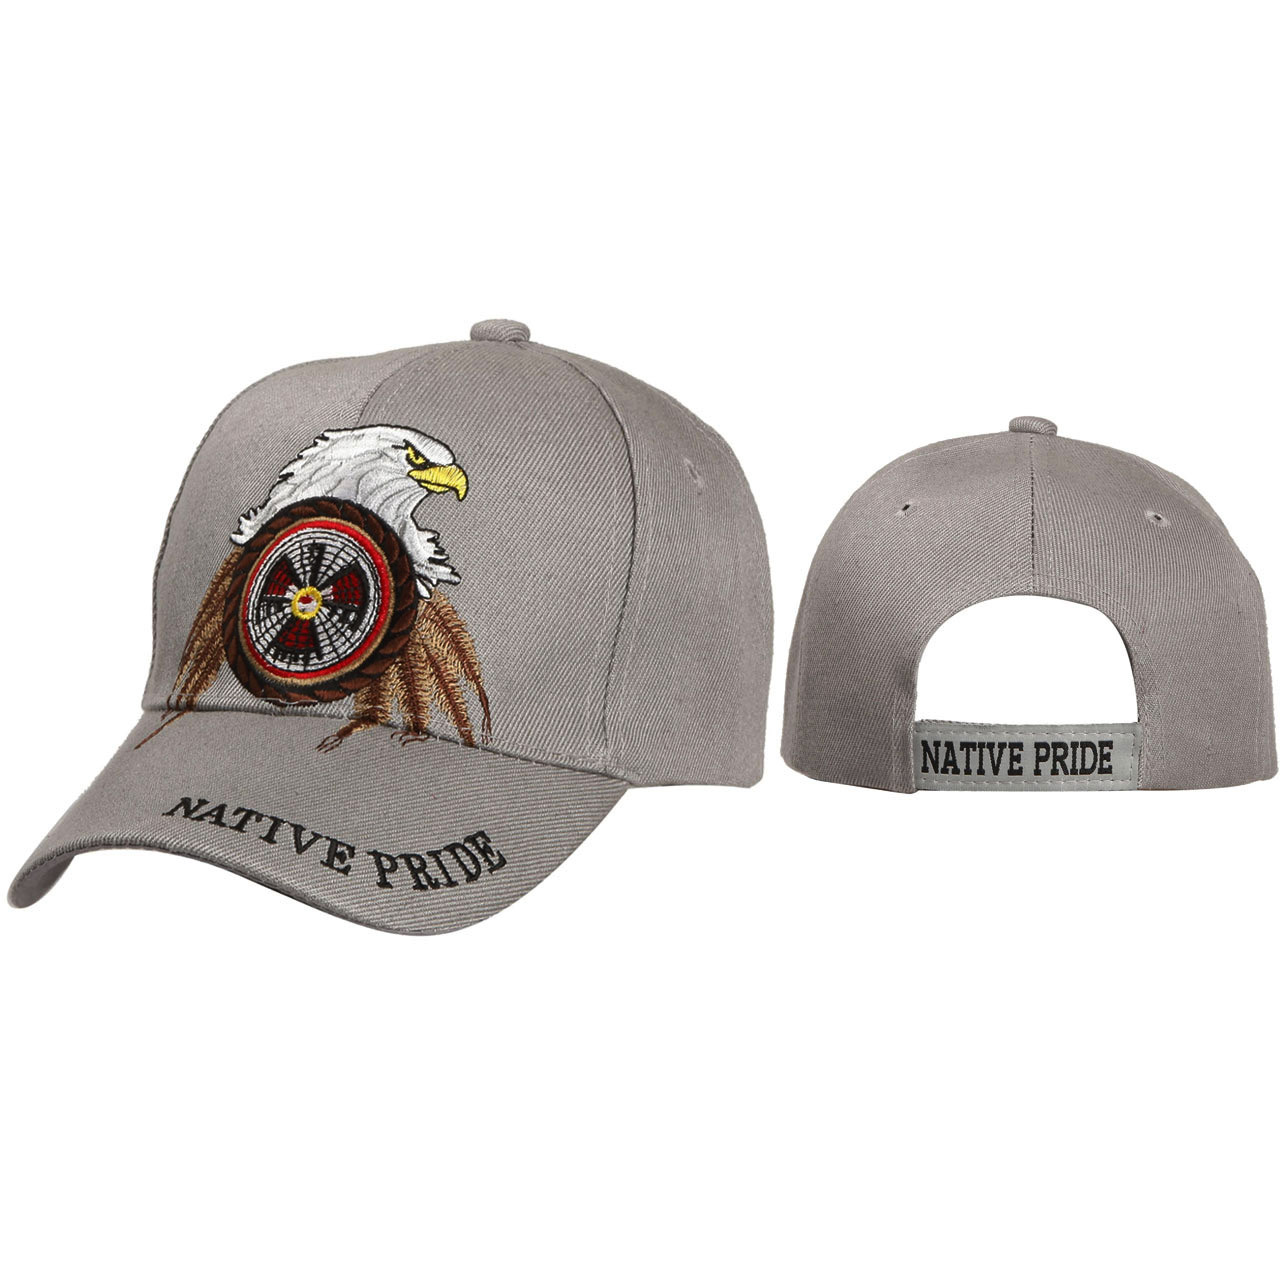 Caps Wholesale ~ Native Pride with Eagle ~ Grey